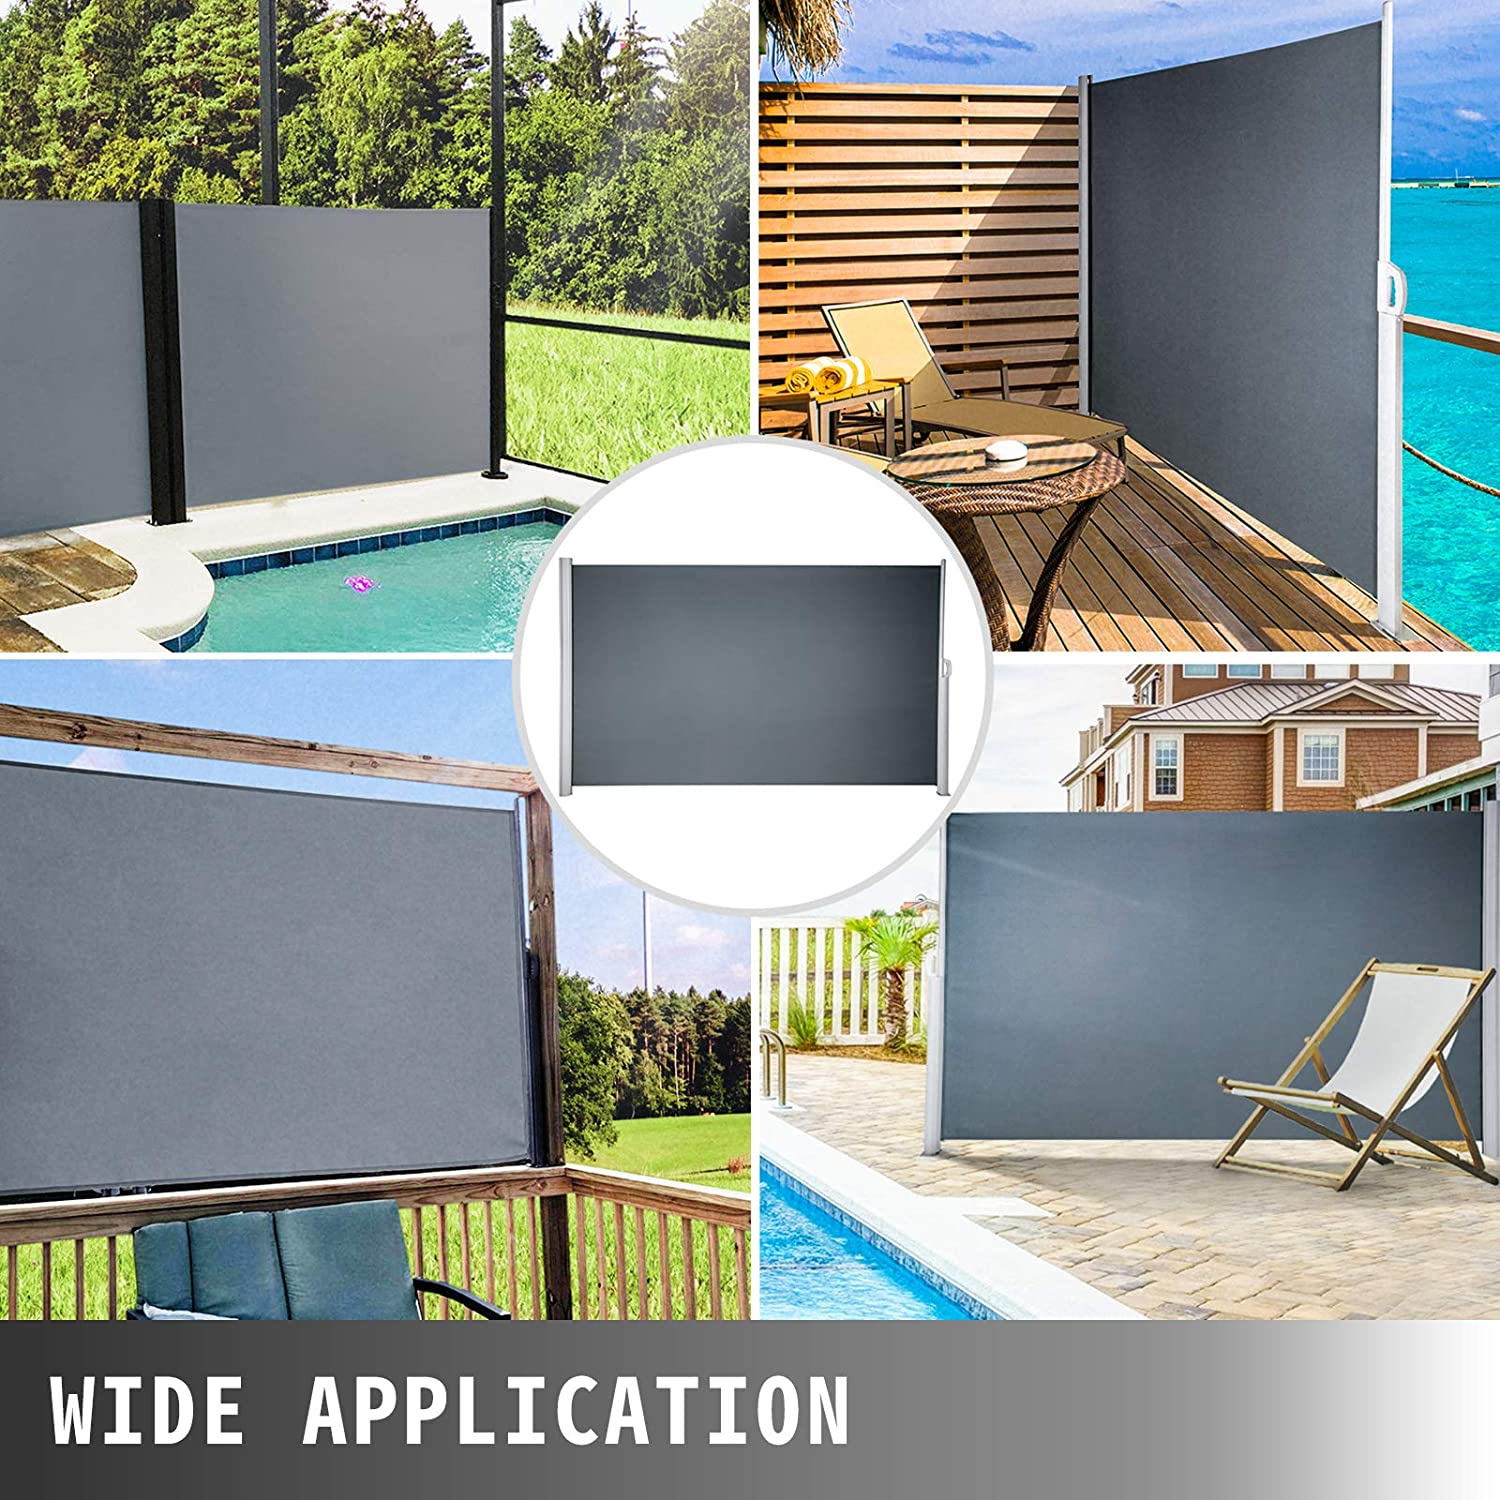 Patio and Terrace LOVESHARE Retractable Side Awning 118 x 63 Retractable Patio Screen Waterproof Outdoor Retractable Room Divider Black for Privacy Garden